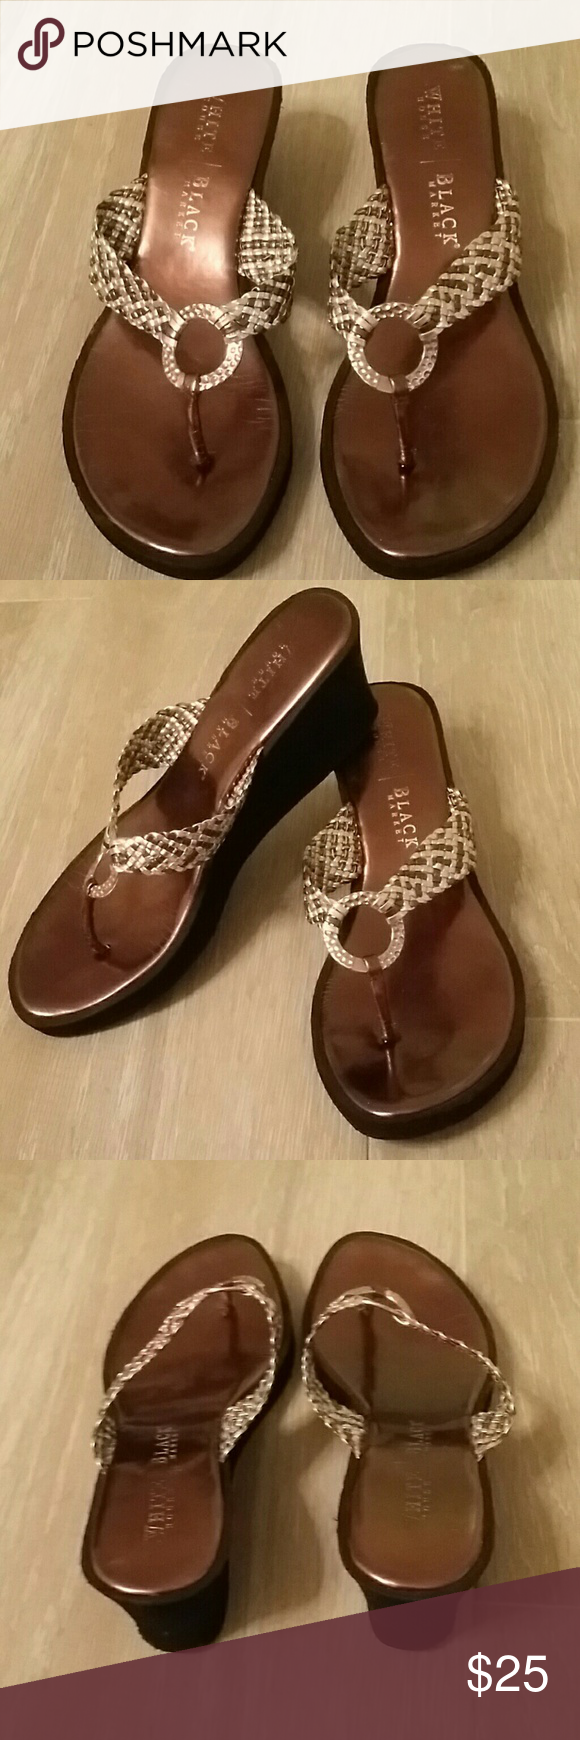 White House Black Market Sandals Very cute WHBM Sandals in Bronze, Silver and Gold. Could be dressed up or dressed down perfect for Spring and Summer!  Size 8 White House Black Market Shoes Sandals